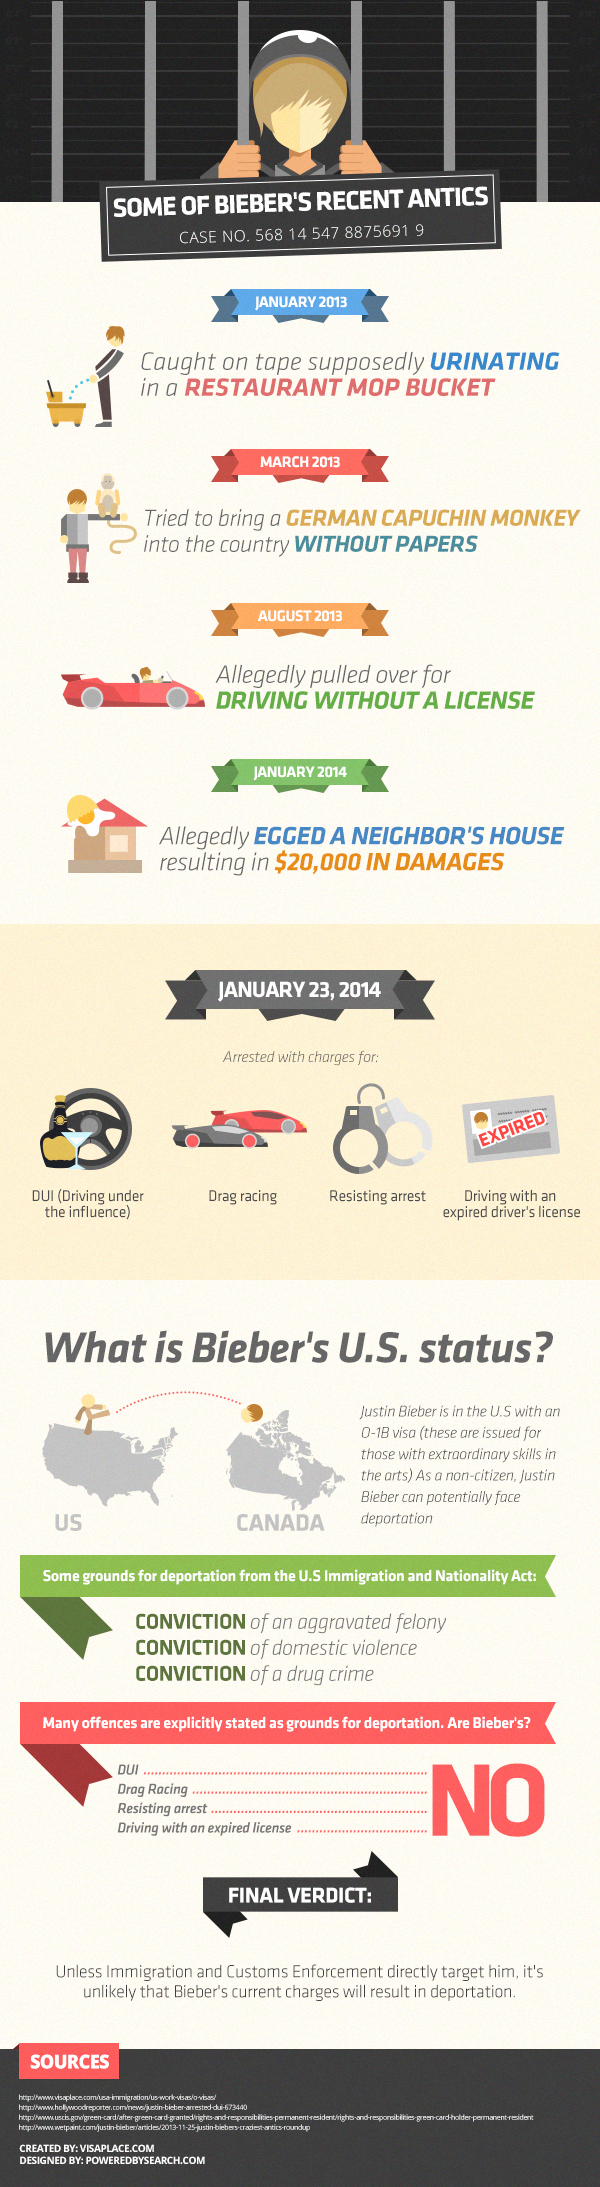 Justin Bieber's Recent Antics - Will He Be Able to Stay in the USA? An Infographic